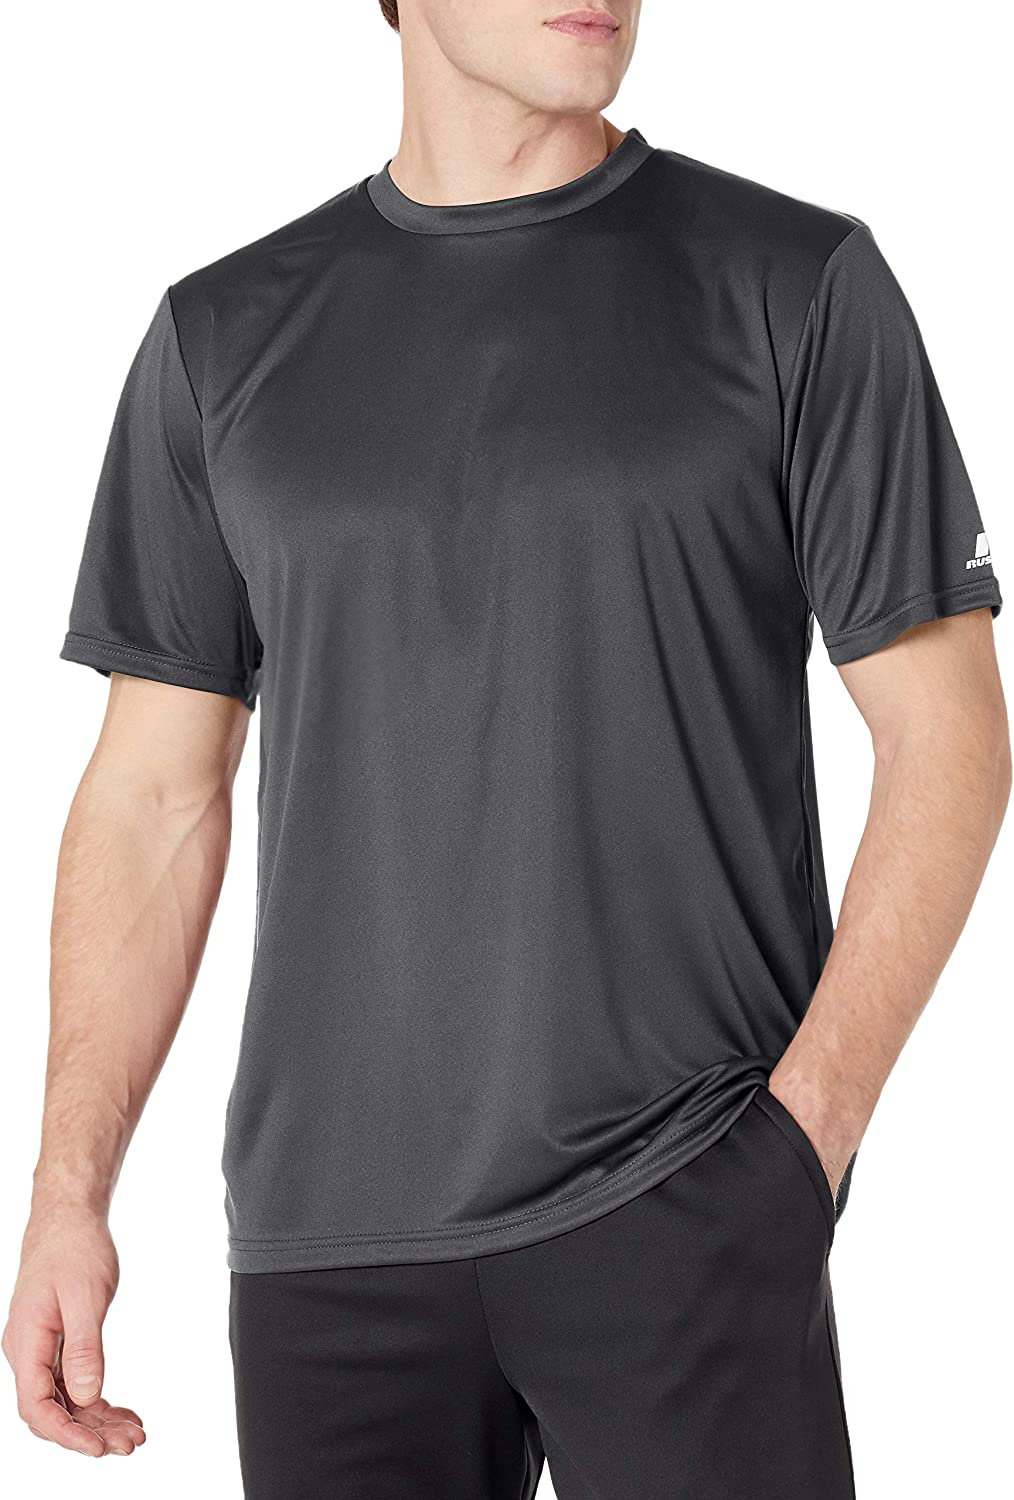 Russell Athletic Men's T-Shirt Performance Max 52% OFF Mail order